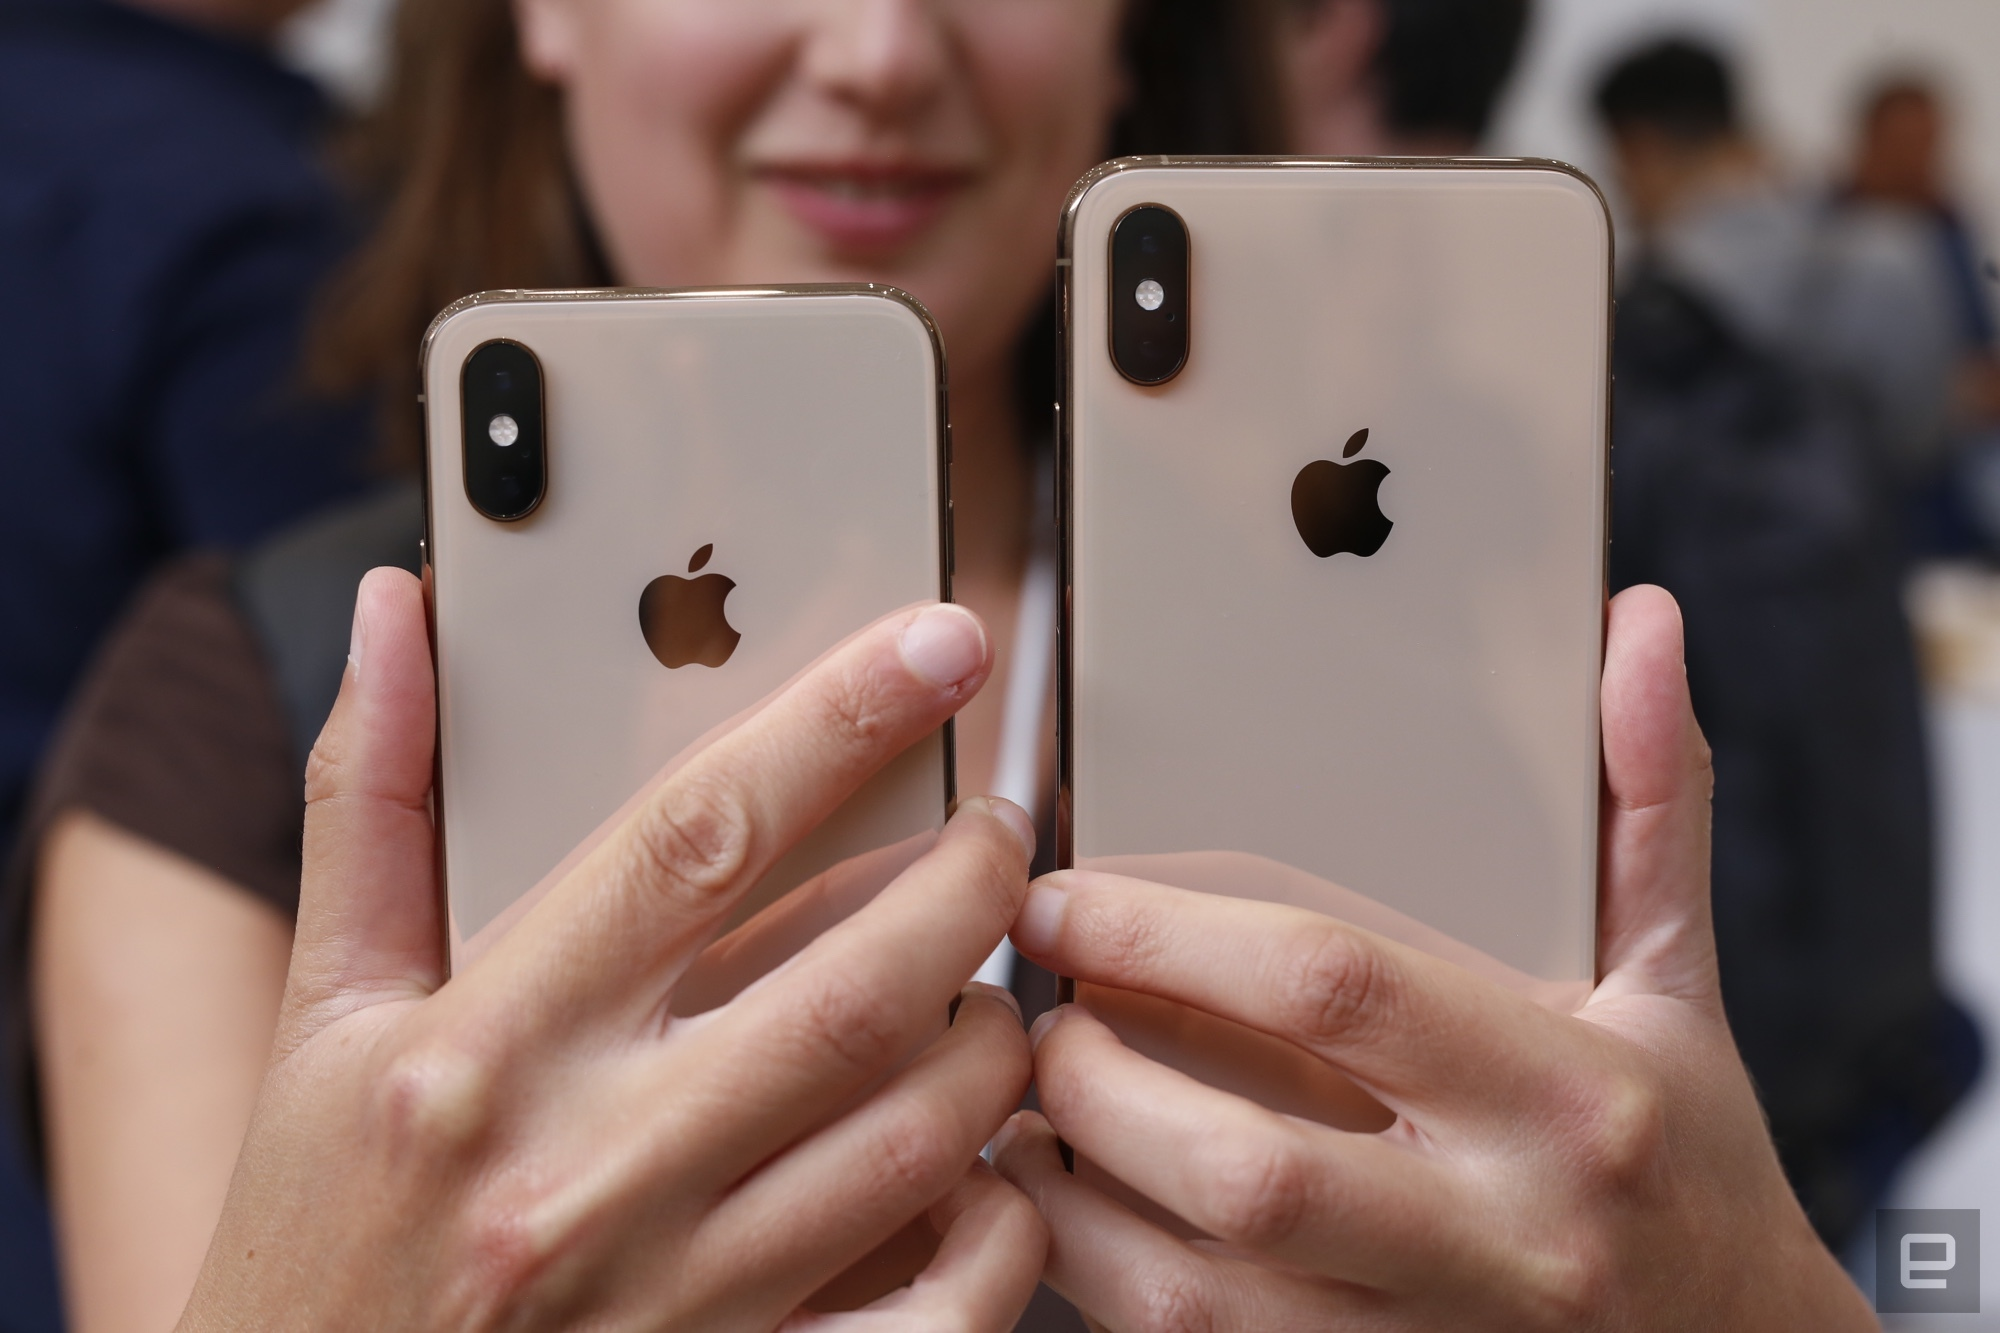 Apple raised the price of its best phone by $330, and no one cares